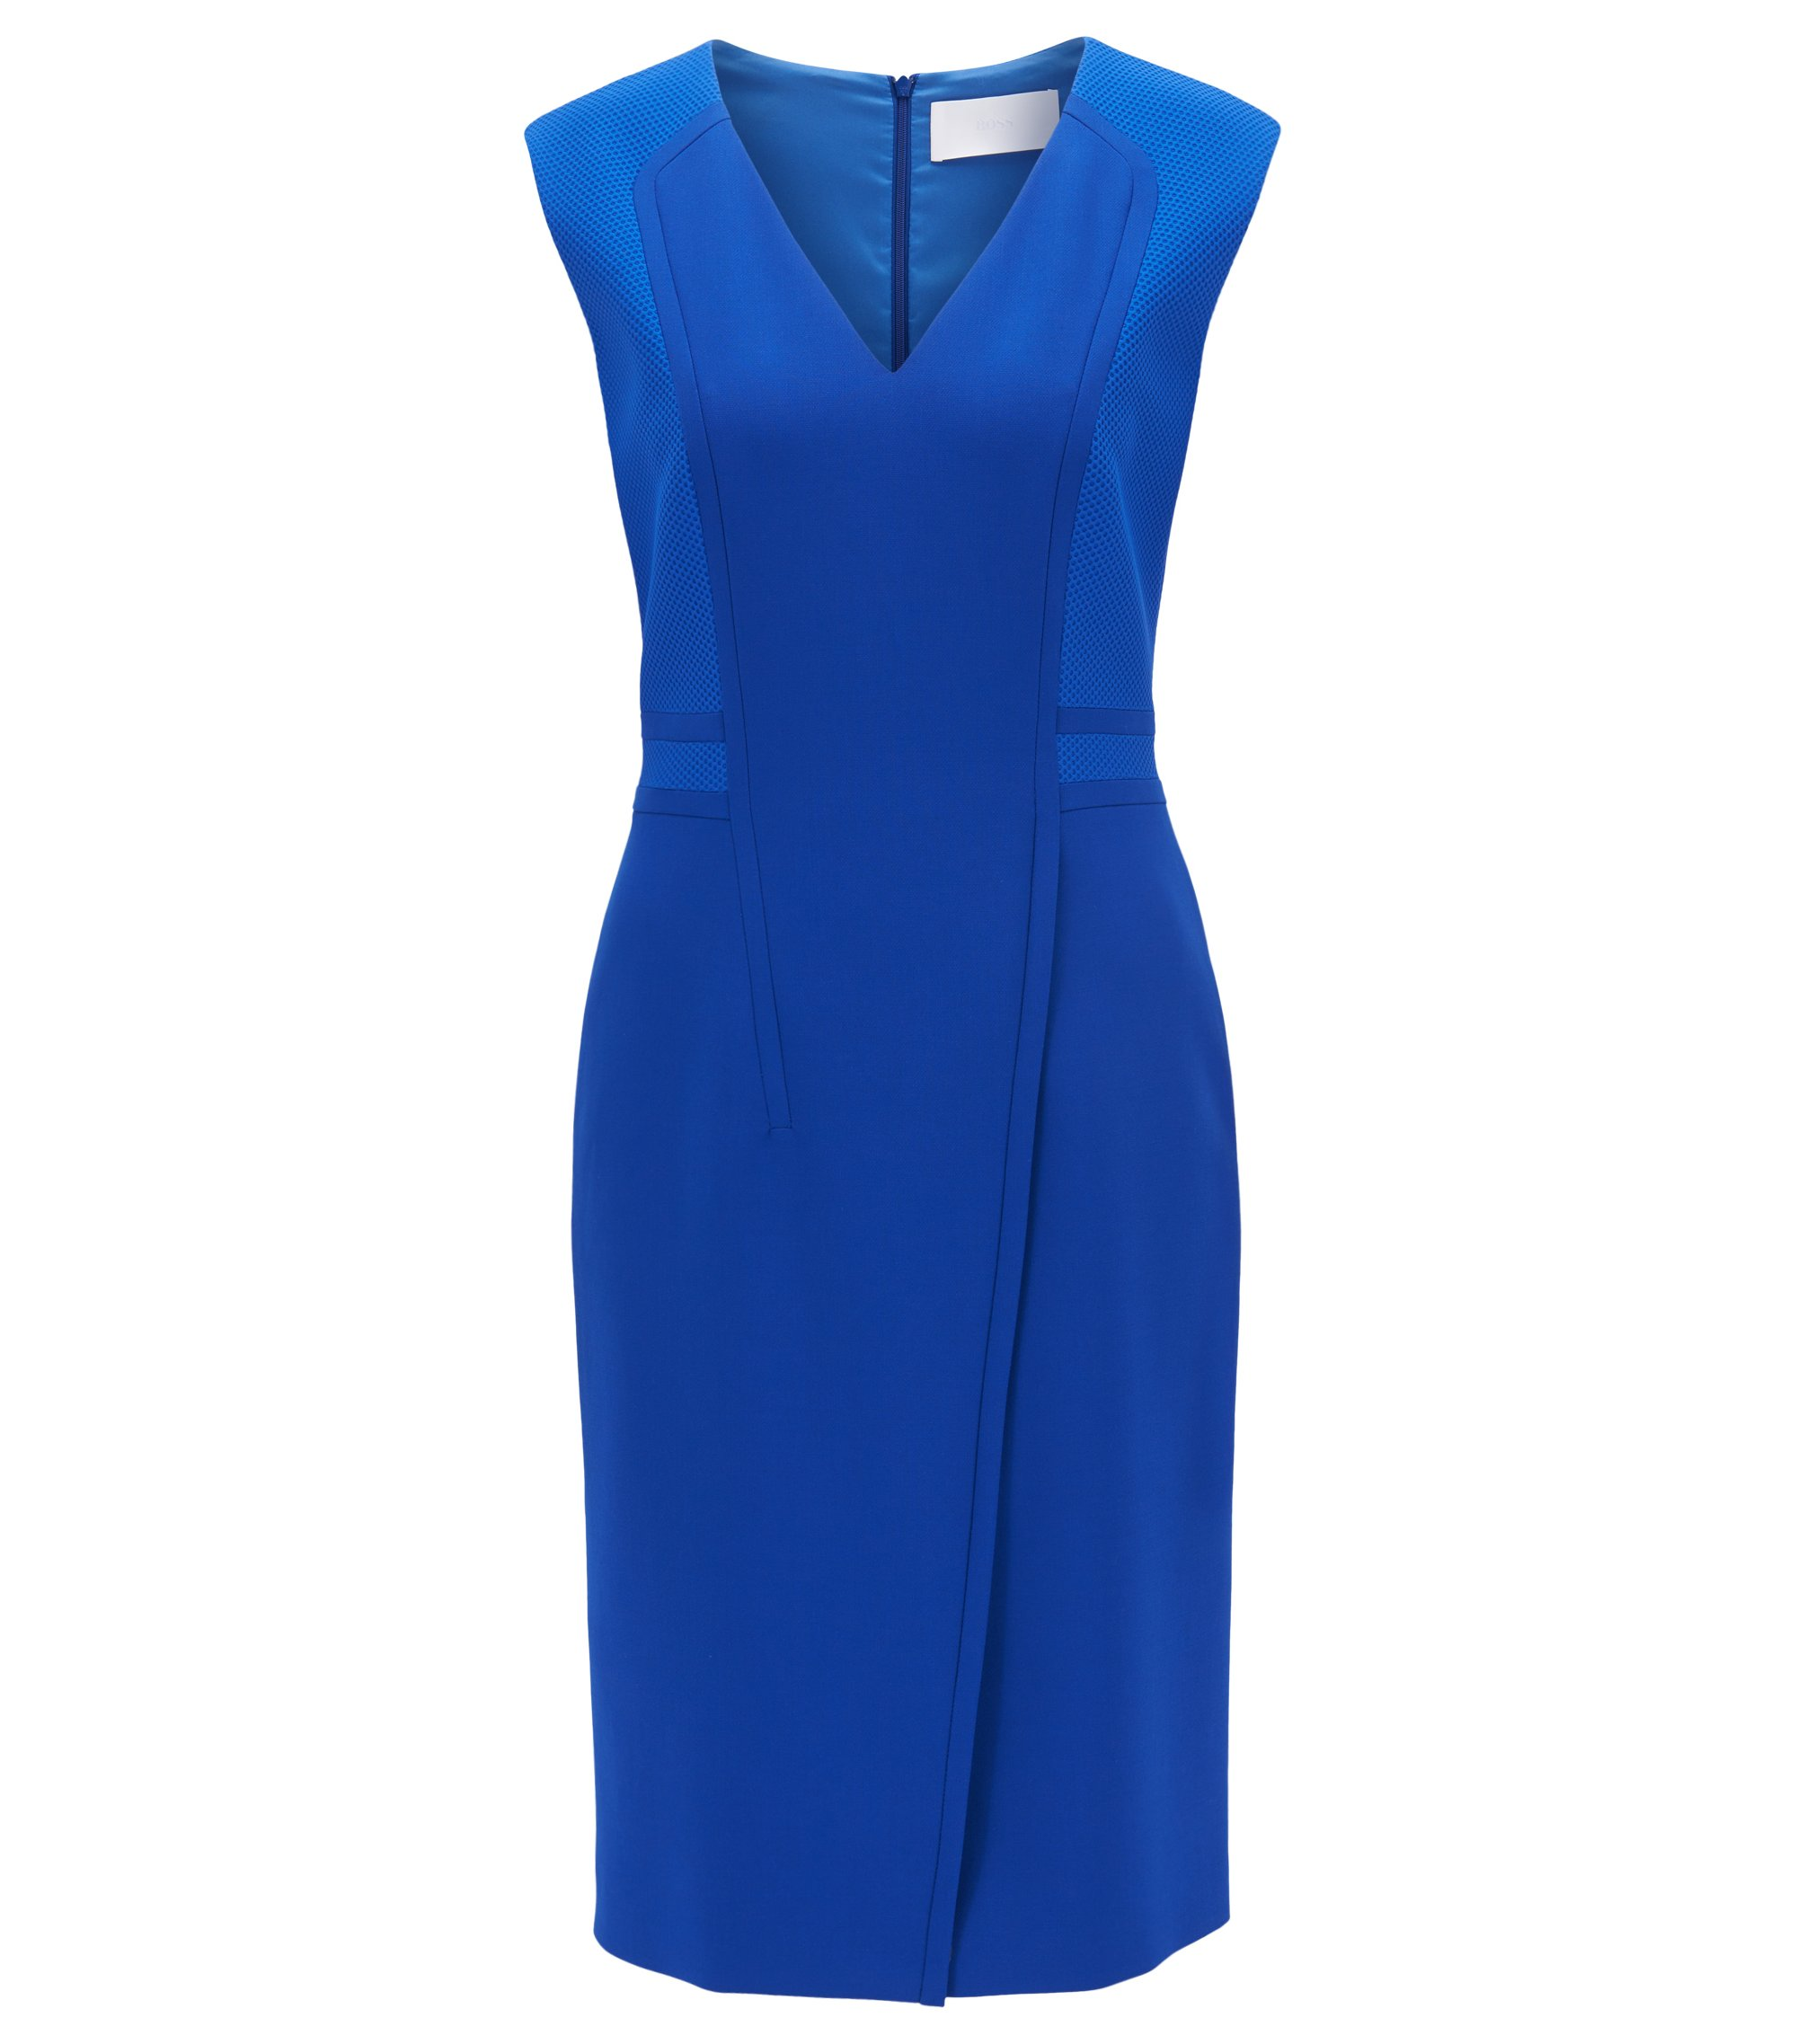 V-Neck Sheath Dress | Dadama, Blue